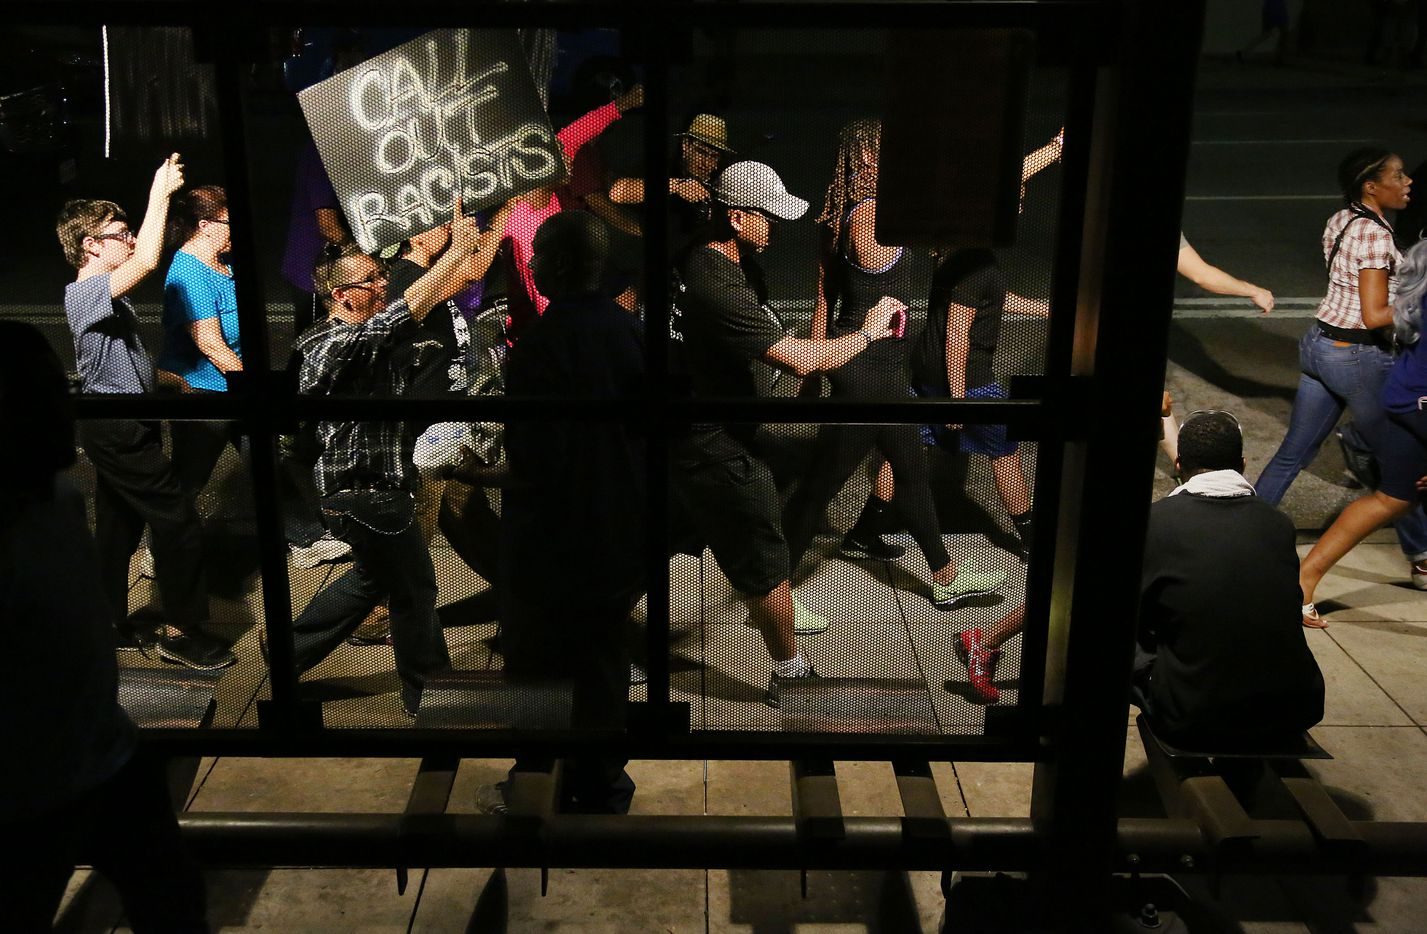 """Protesters pass a transit stop while marching during a protest held by the Next Generation Action Network in downtown Dallas Thursday September 22, 2016. The protest, which started at the Main Street Garden Park and is called """"Enough is Enough,"""" is in reaction to recent shooting by police in Tulsa and Charlotte. (Andy Jacobsohn/The Dallas Morning News)"""